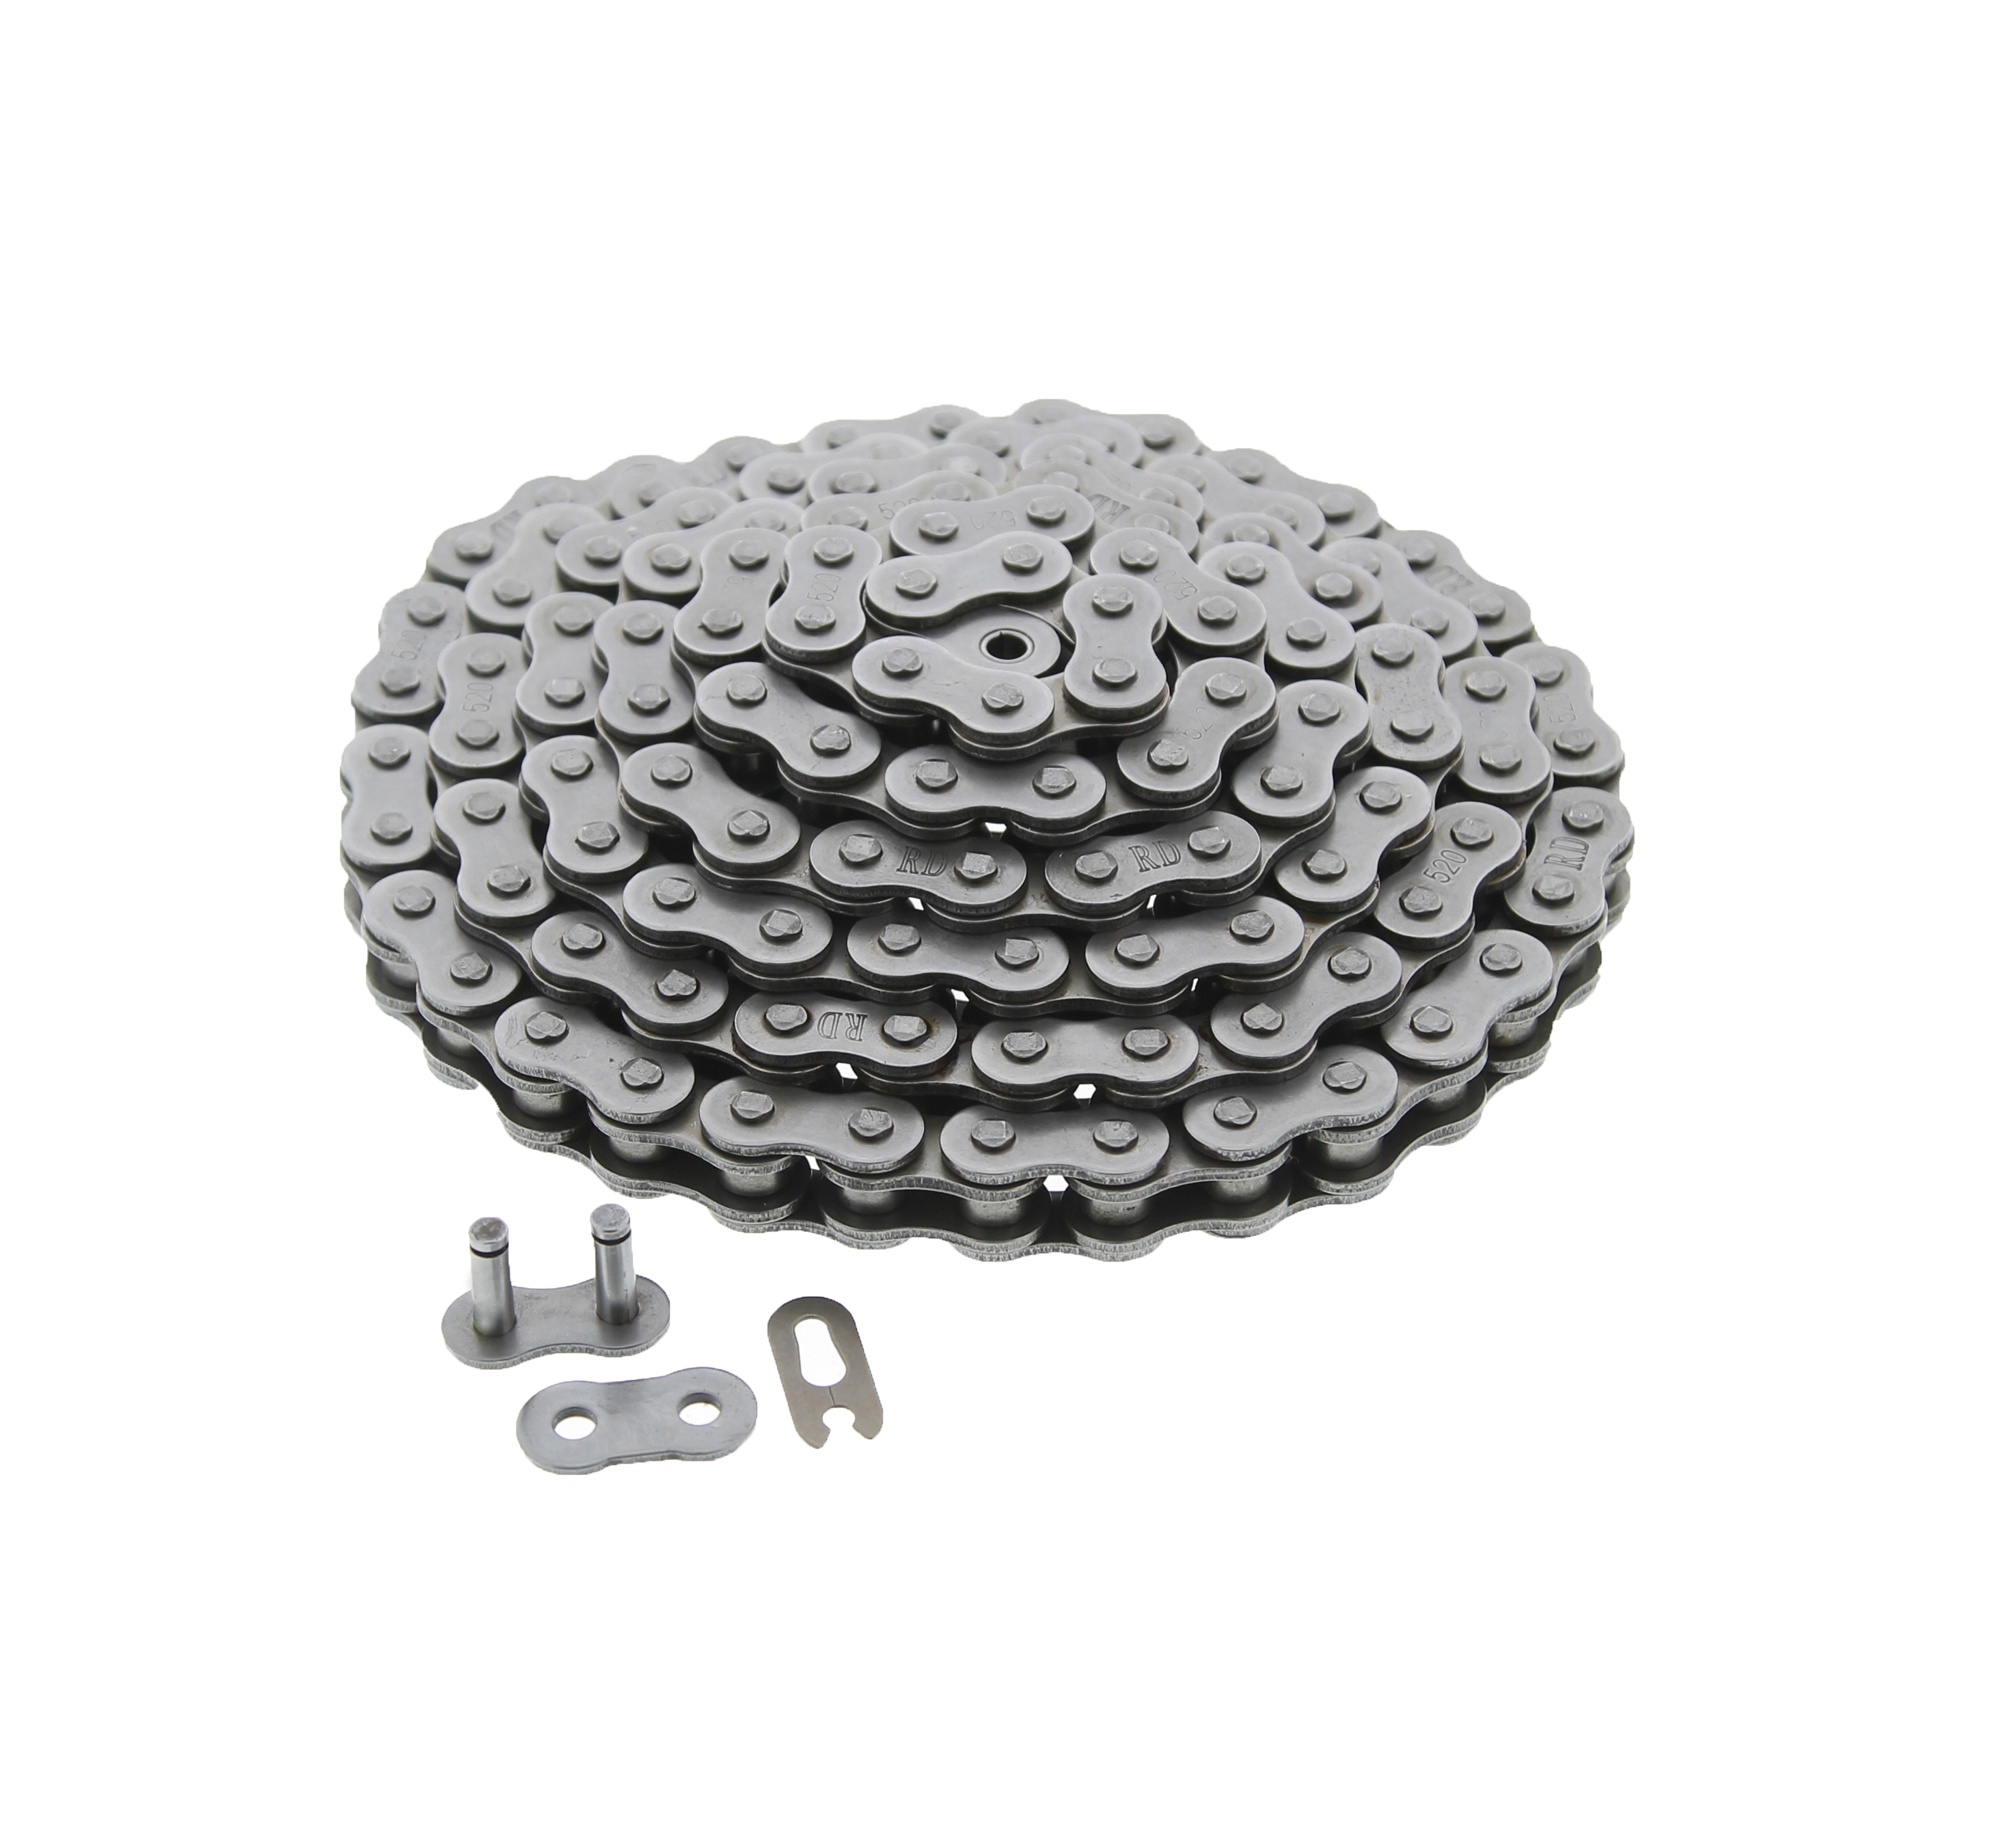 S/&S Cycle Easy Start Cams 551 Chain Drive 106-4947